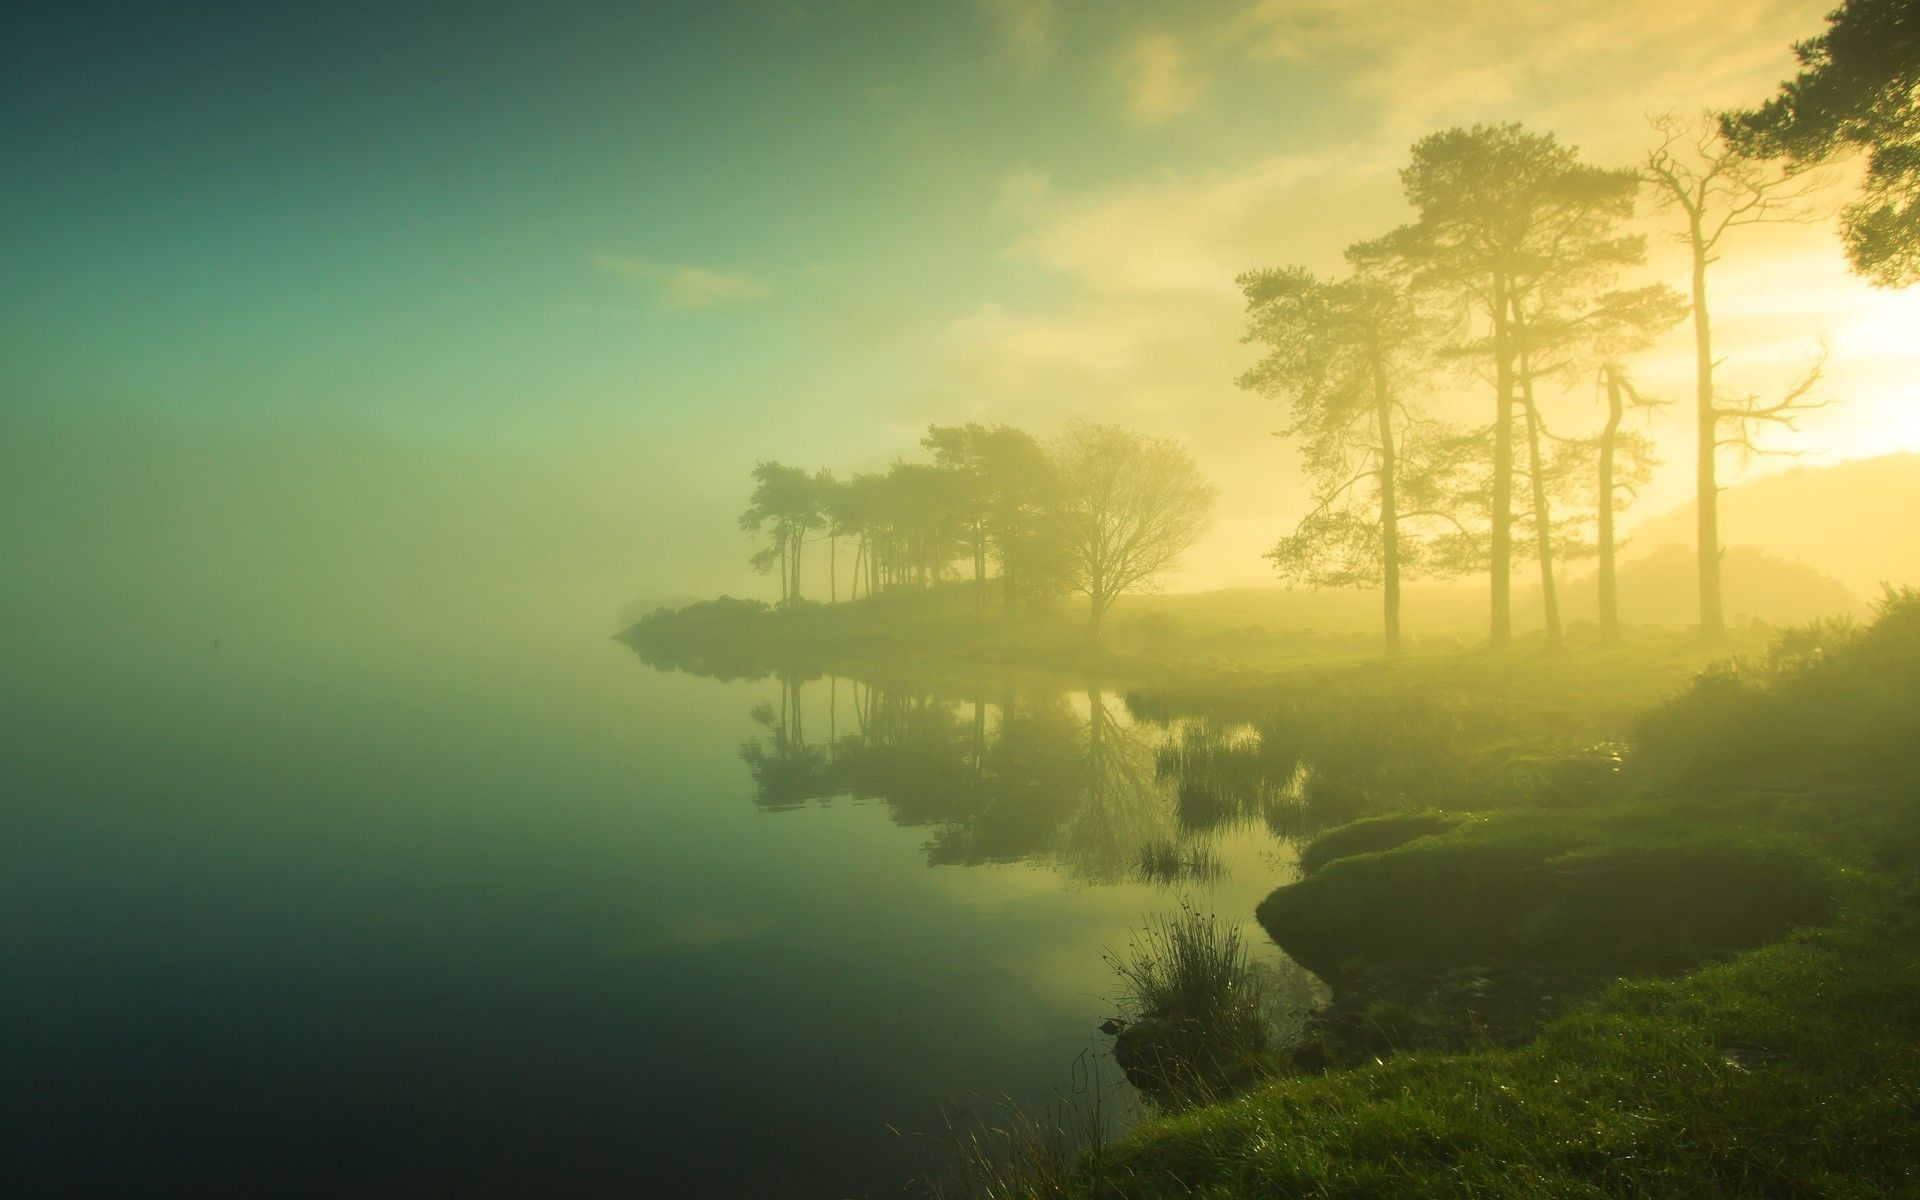 Res: 1920x1200, HD Quality PC Calm Backgrounds: Wallpapers and Pictures Wallpapers for PC &  Mac, Tablet, Laptop, Mobile